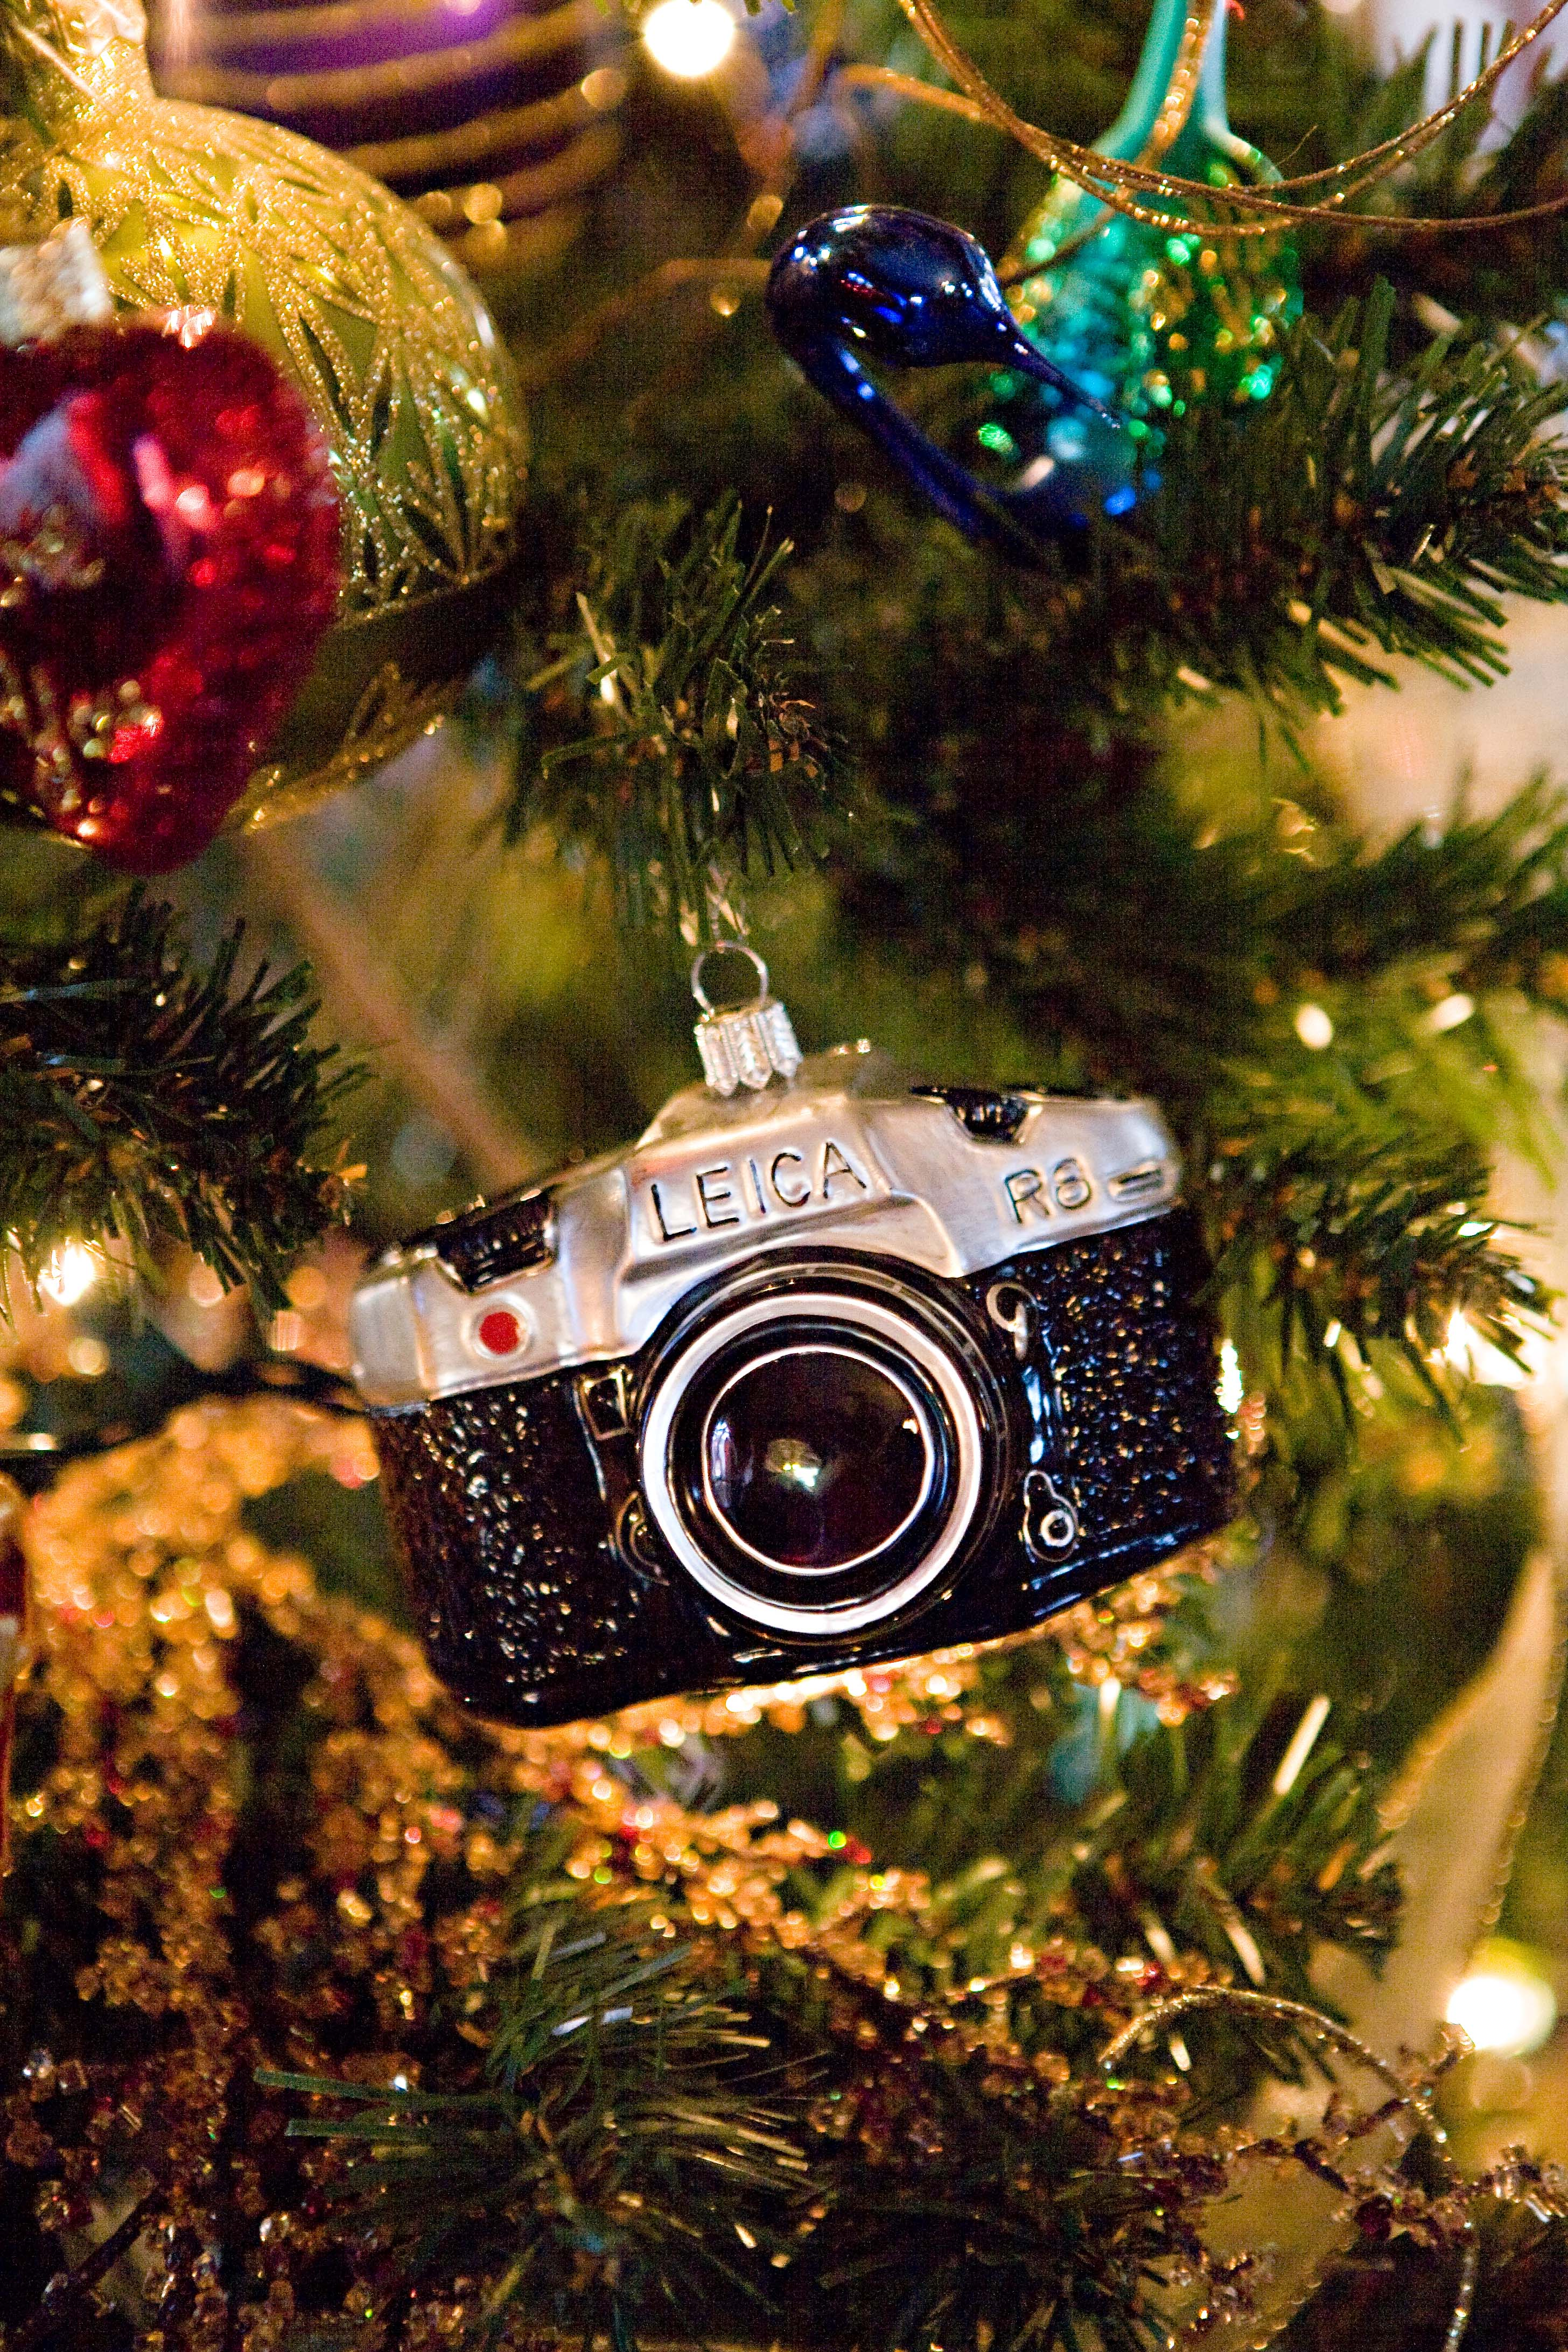 Camera christmas ornaments - Welcome To The Riggio S Parade Of Trees Connie Riggio Seattle 47 Best Images About Camera Christmas